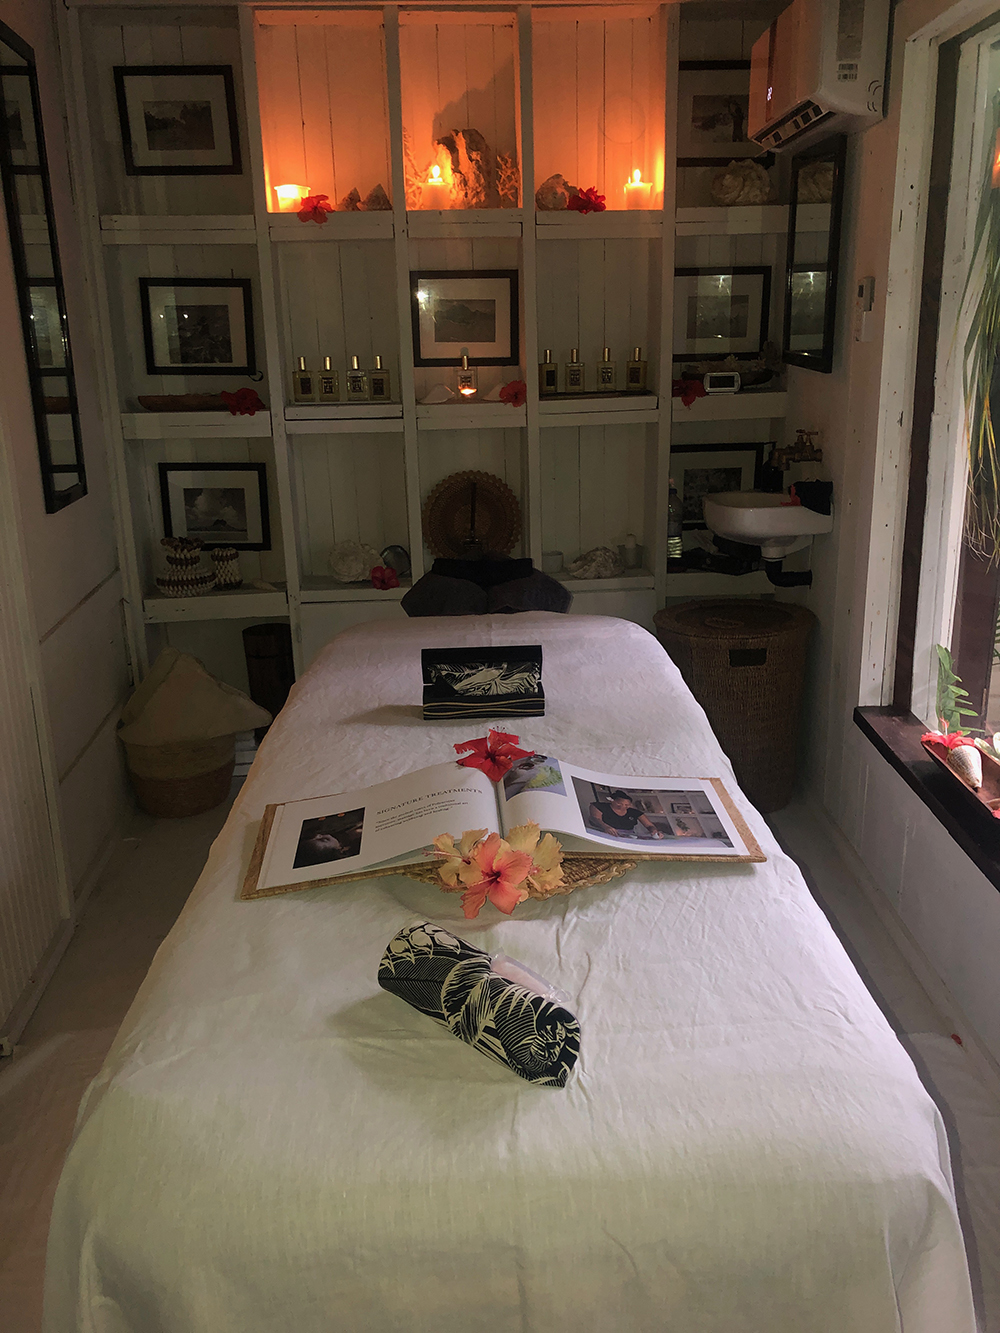 The beautifully decorated massage room.